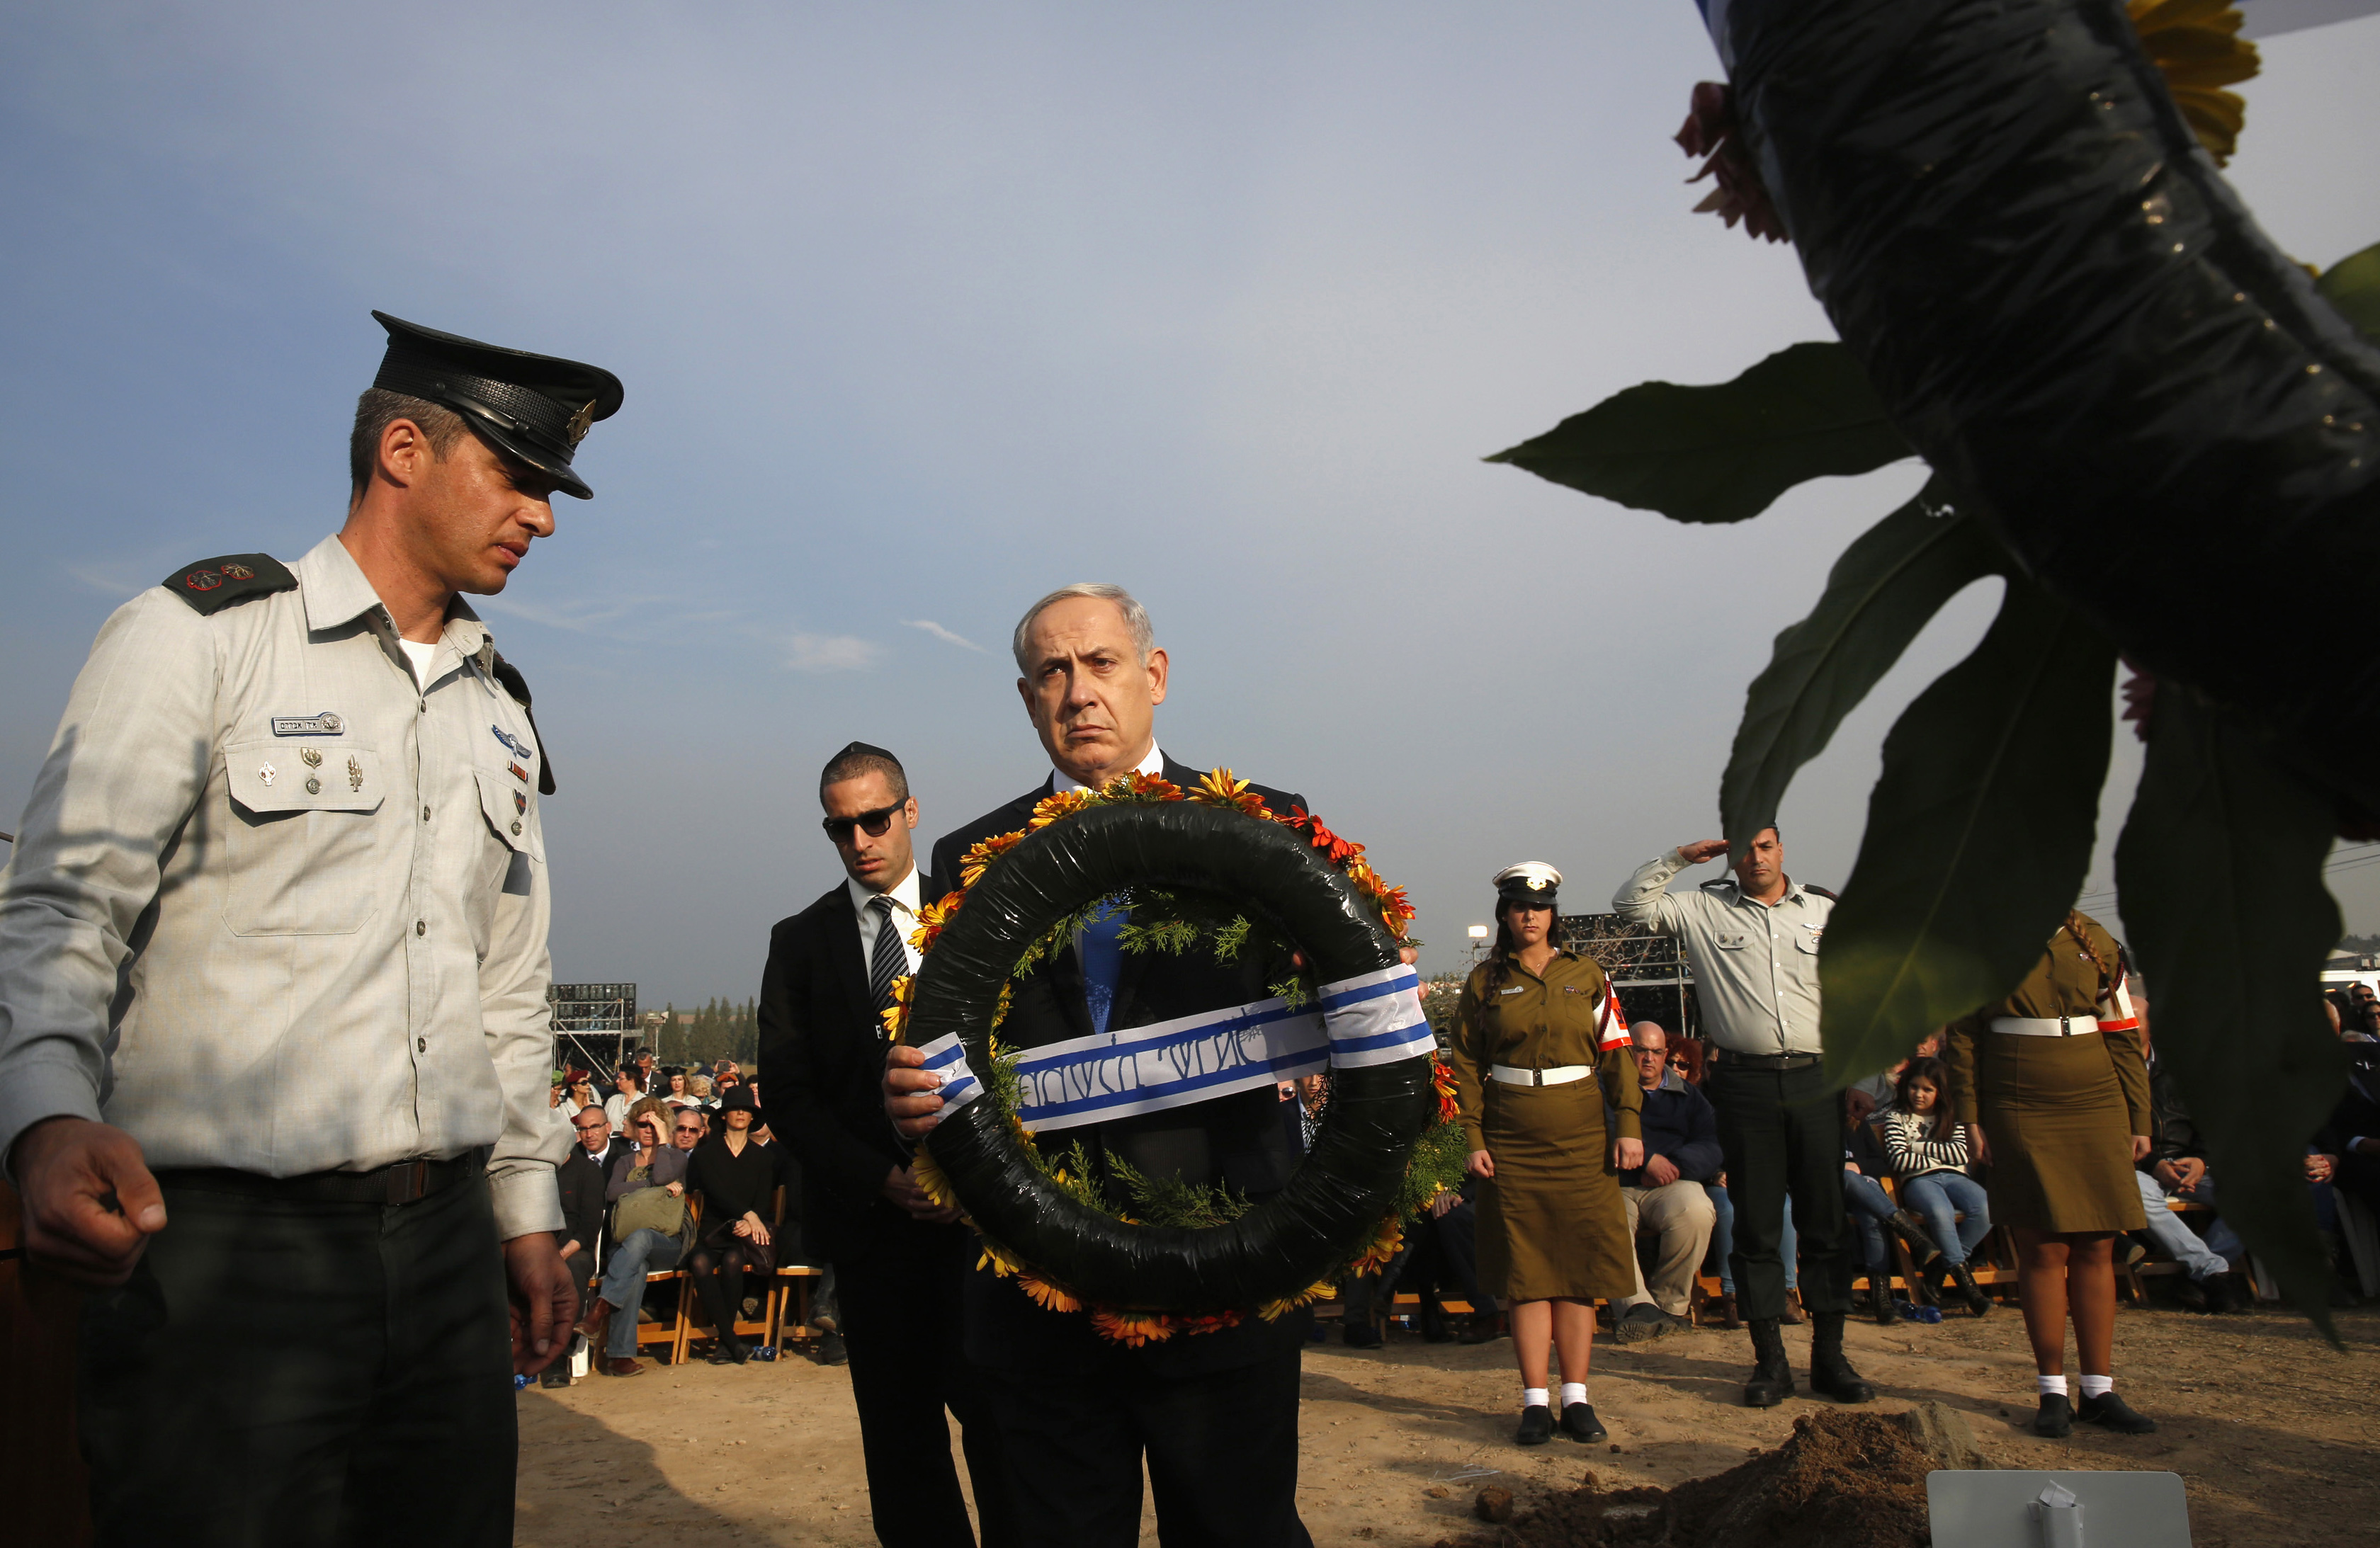 Israeli Prime Minister Benjamin Netanyahu lays a wreath during the funeral service for Ariel Sharon near Sycamore Farm, Sharon's residence in southern Israel, on January 13, 2014.